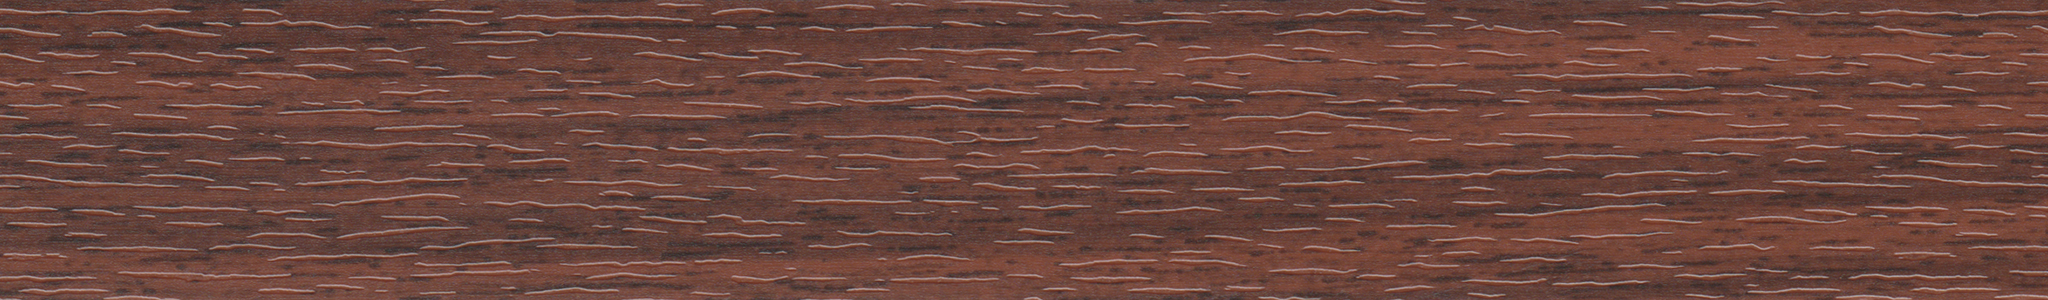 HD 28776 ABS Edge Dark Mahogany Pore